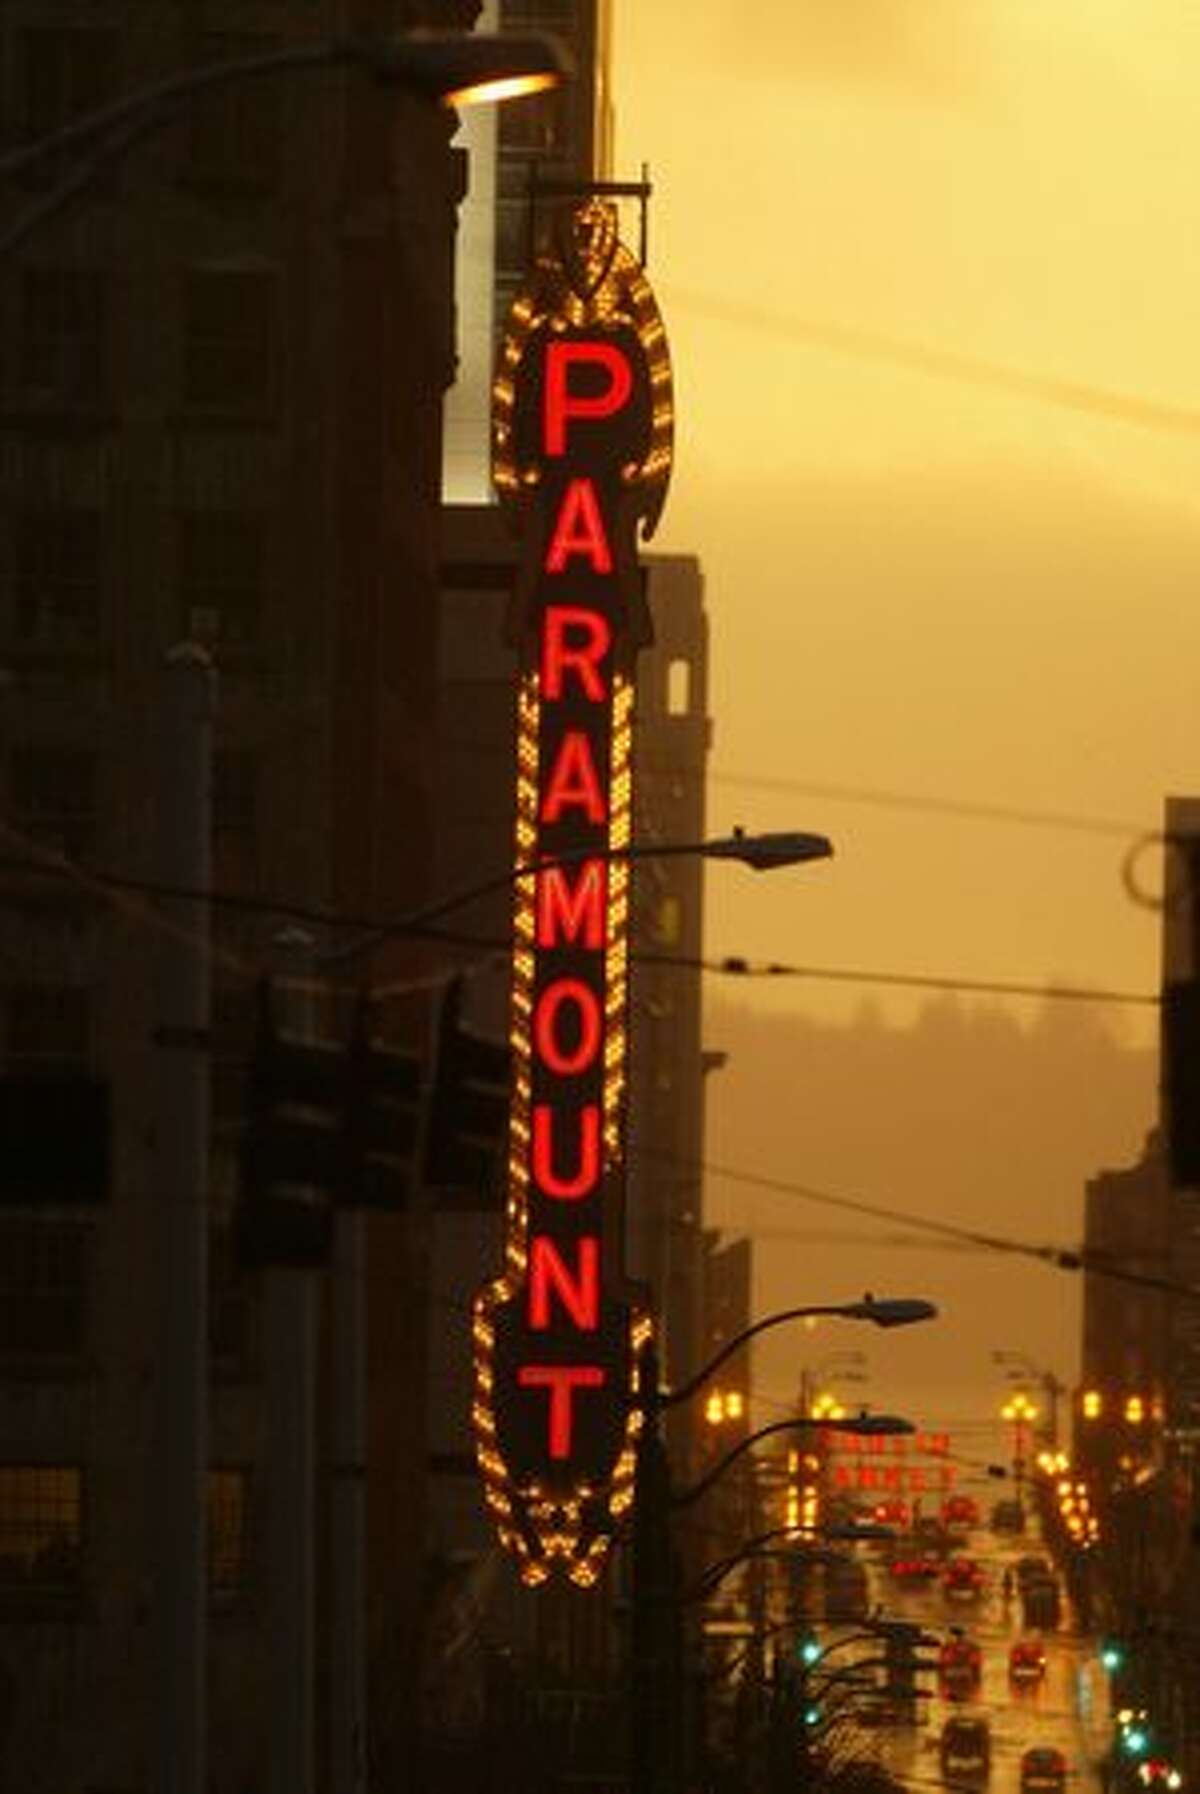 Paramount Theater on Pine St.